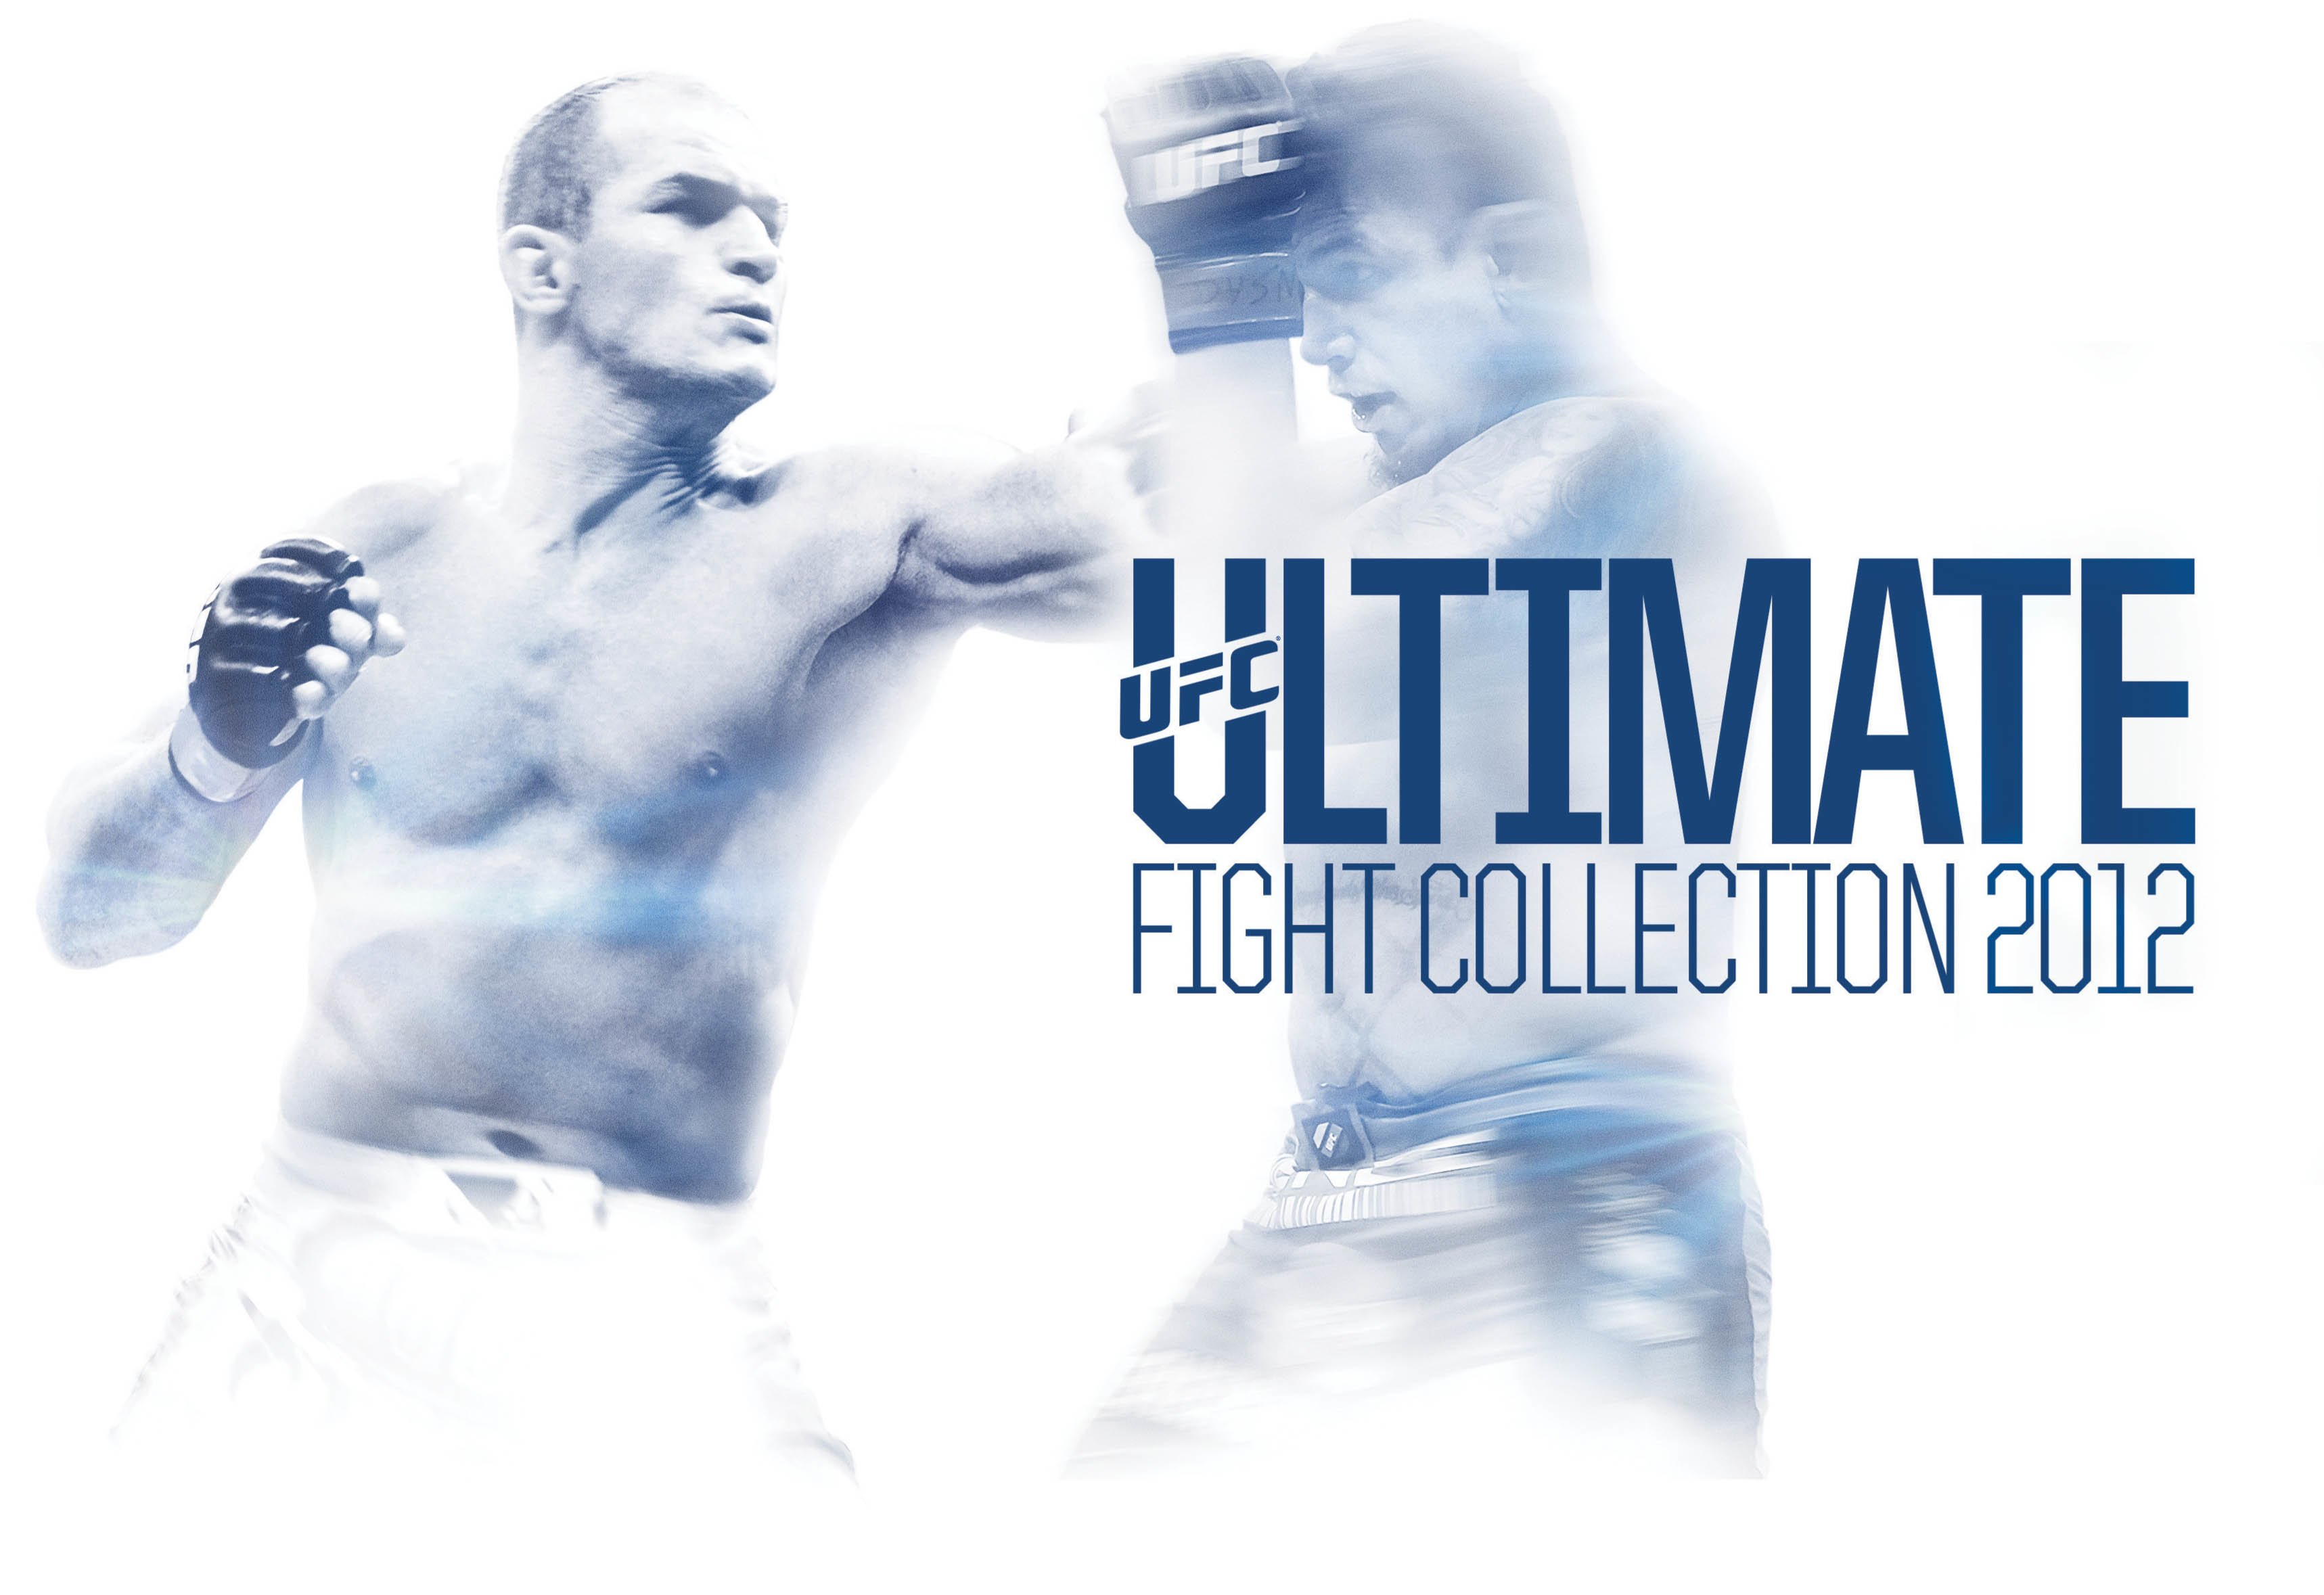 Ultimate Fight Collection 2012